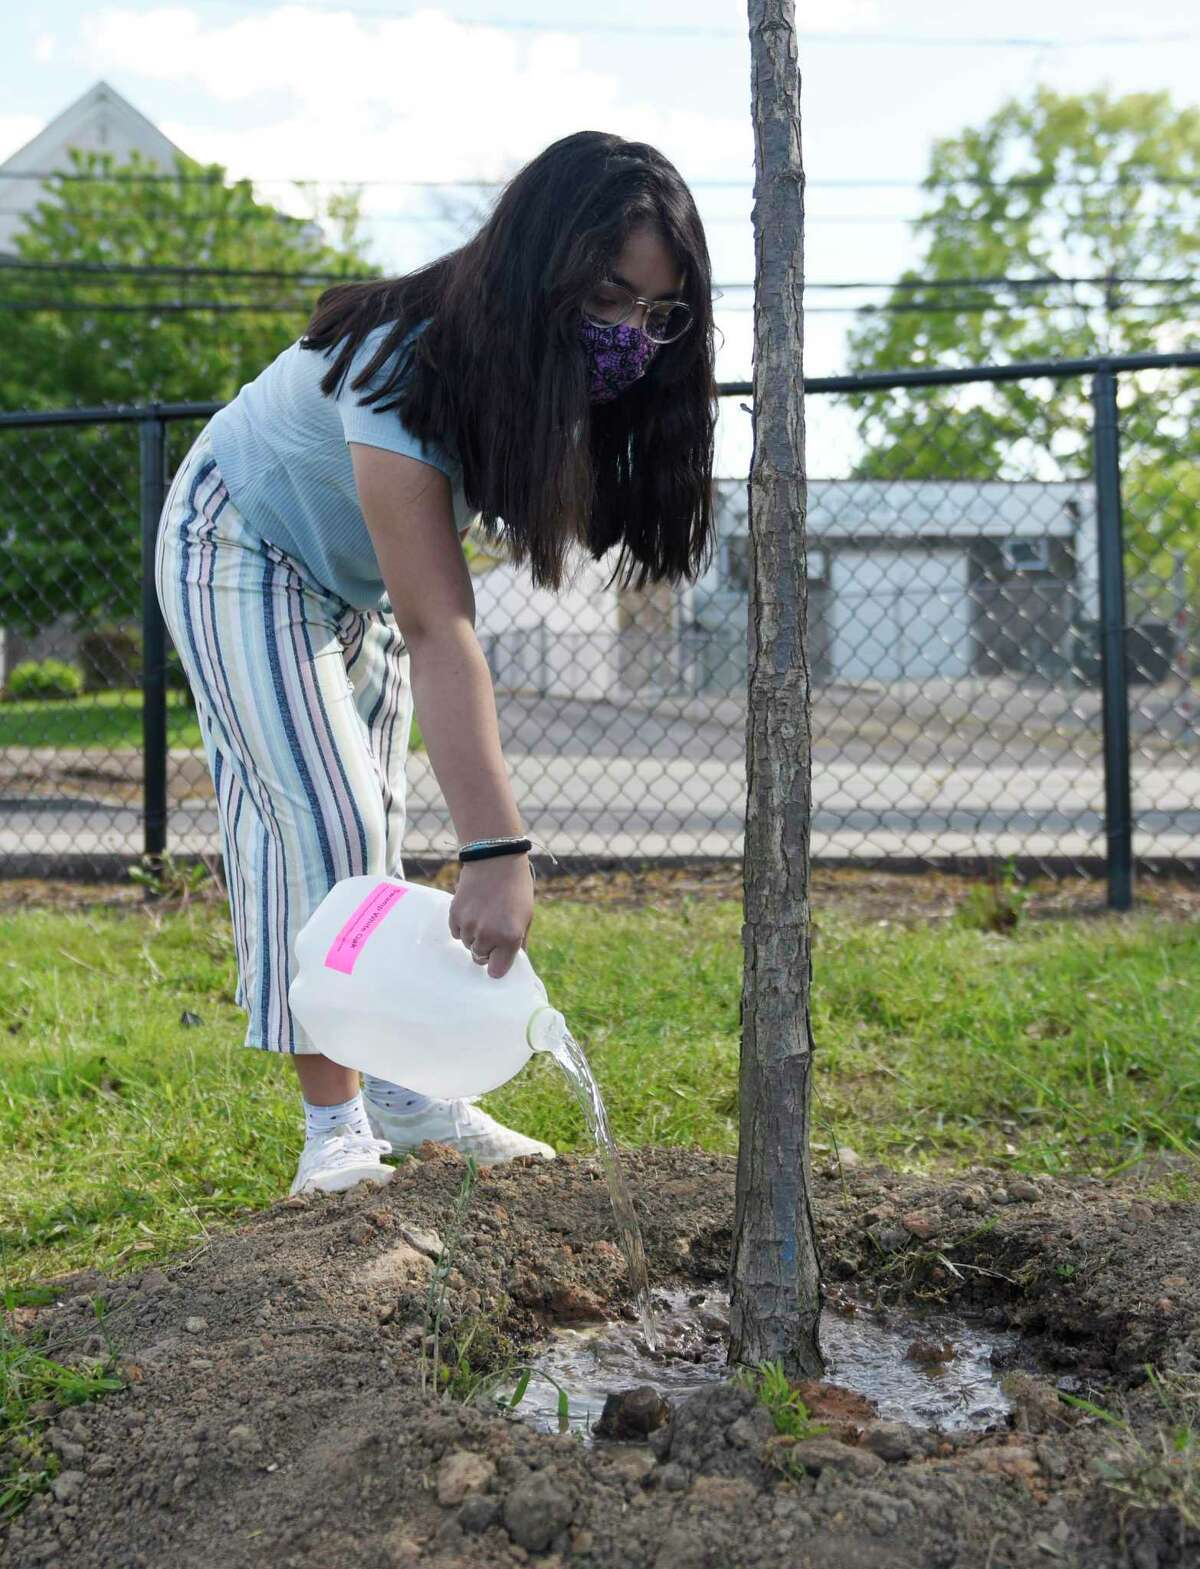 Danna D., 10, waters newly-planted Swamp White Oak trees at Lione Park in Stamford, Conn. Thursday, May 13, 2021. Pollinator Pathway Stamford planted 37 new trees in four Stamford parks starting on Earth Day of this year to help create corridors of pollinator-friendly habitat throughout the northeast. With the help of the Boys & Girls Club of Stamford, the new Red Maples and Swamp White Oaks will be watered by Keystone Club and STEM students.